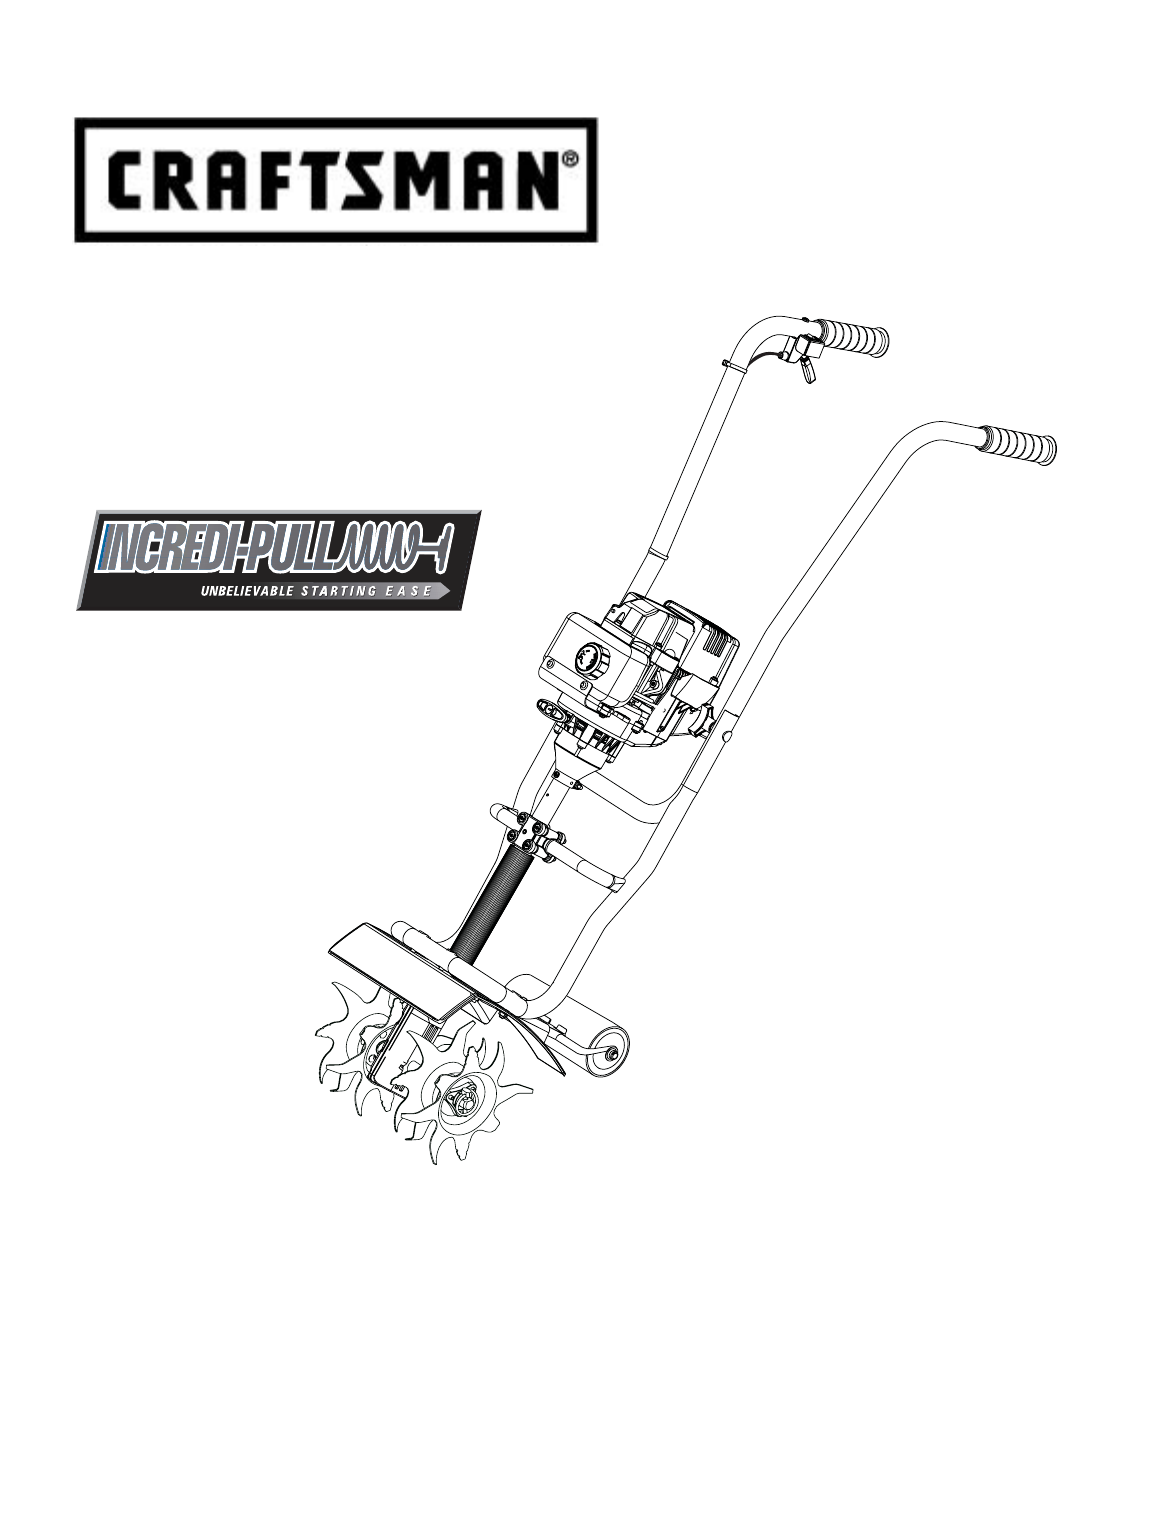 Craftsman Cultivator 31629256 User Guide ManualsOnlinecom